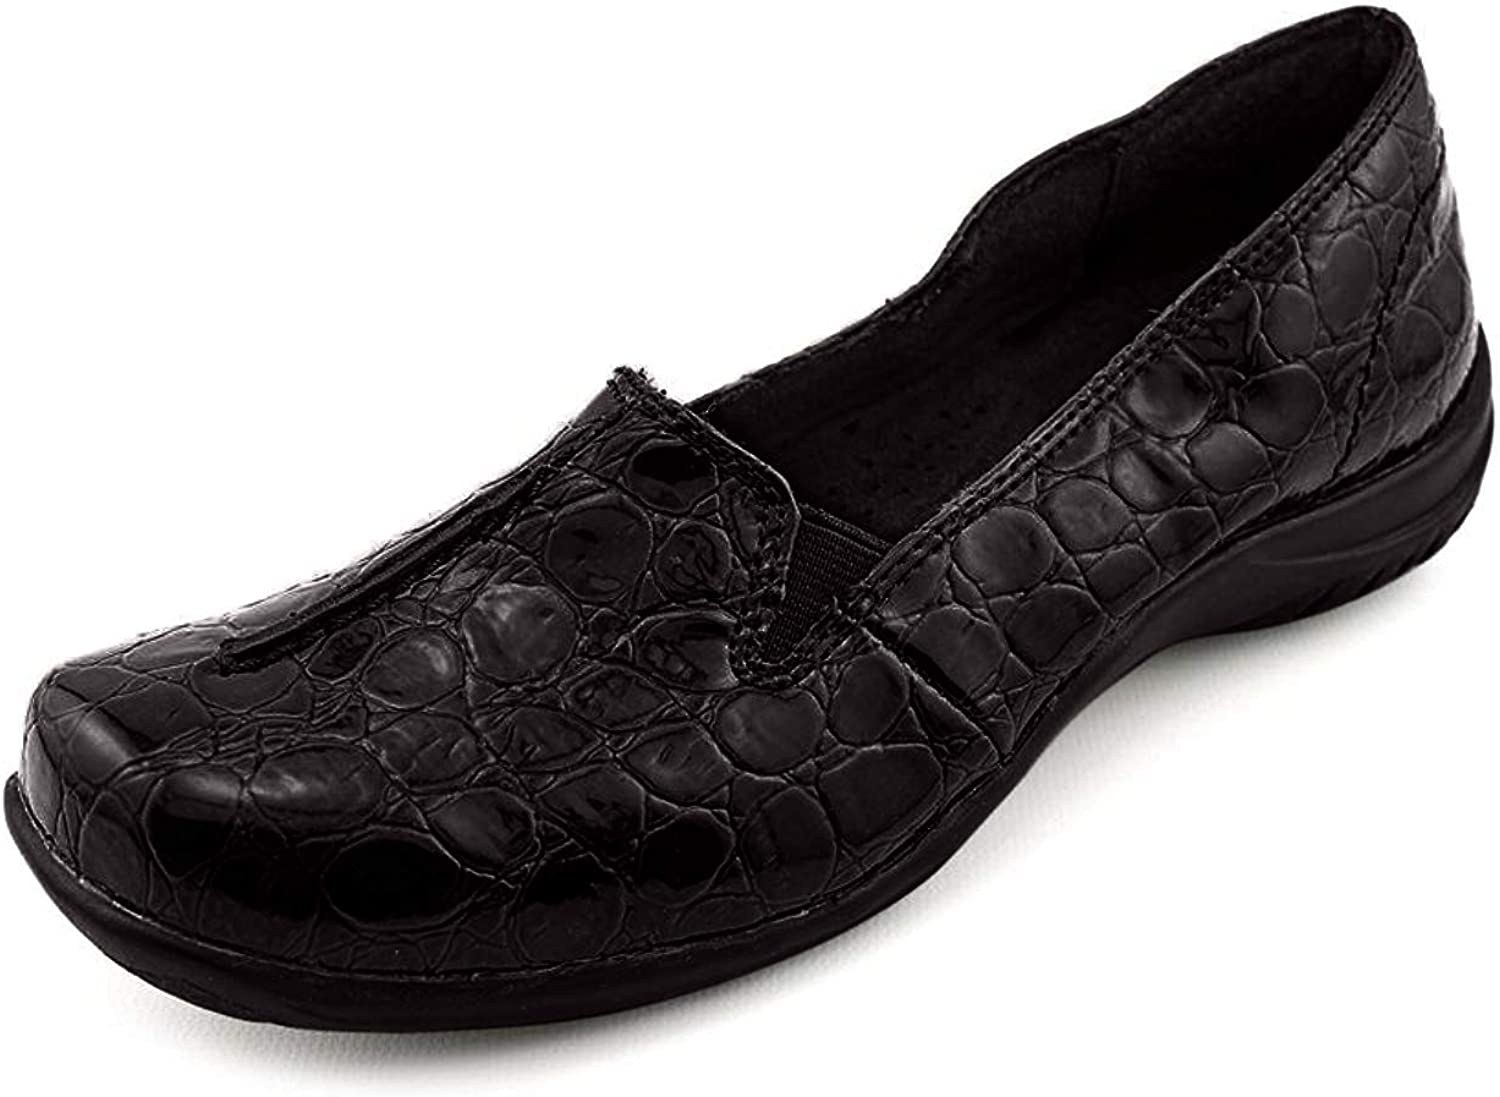 Easy Street Womens Purpose Closed Toe Loafers, Black, Size 7.5